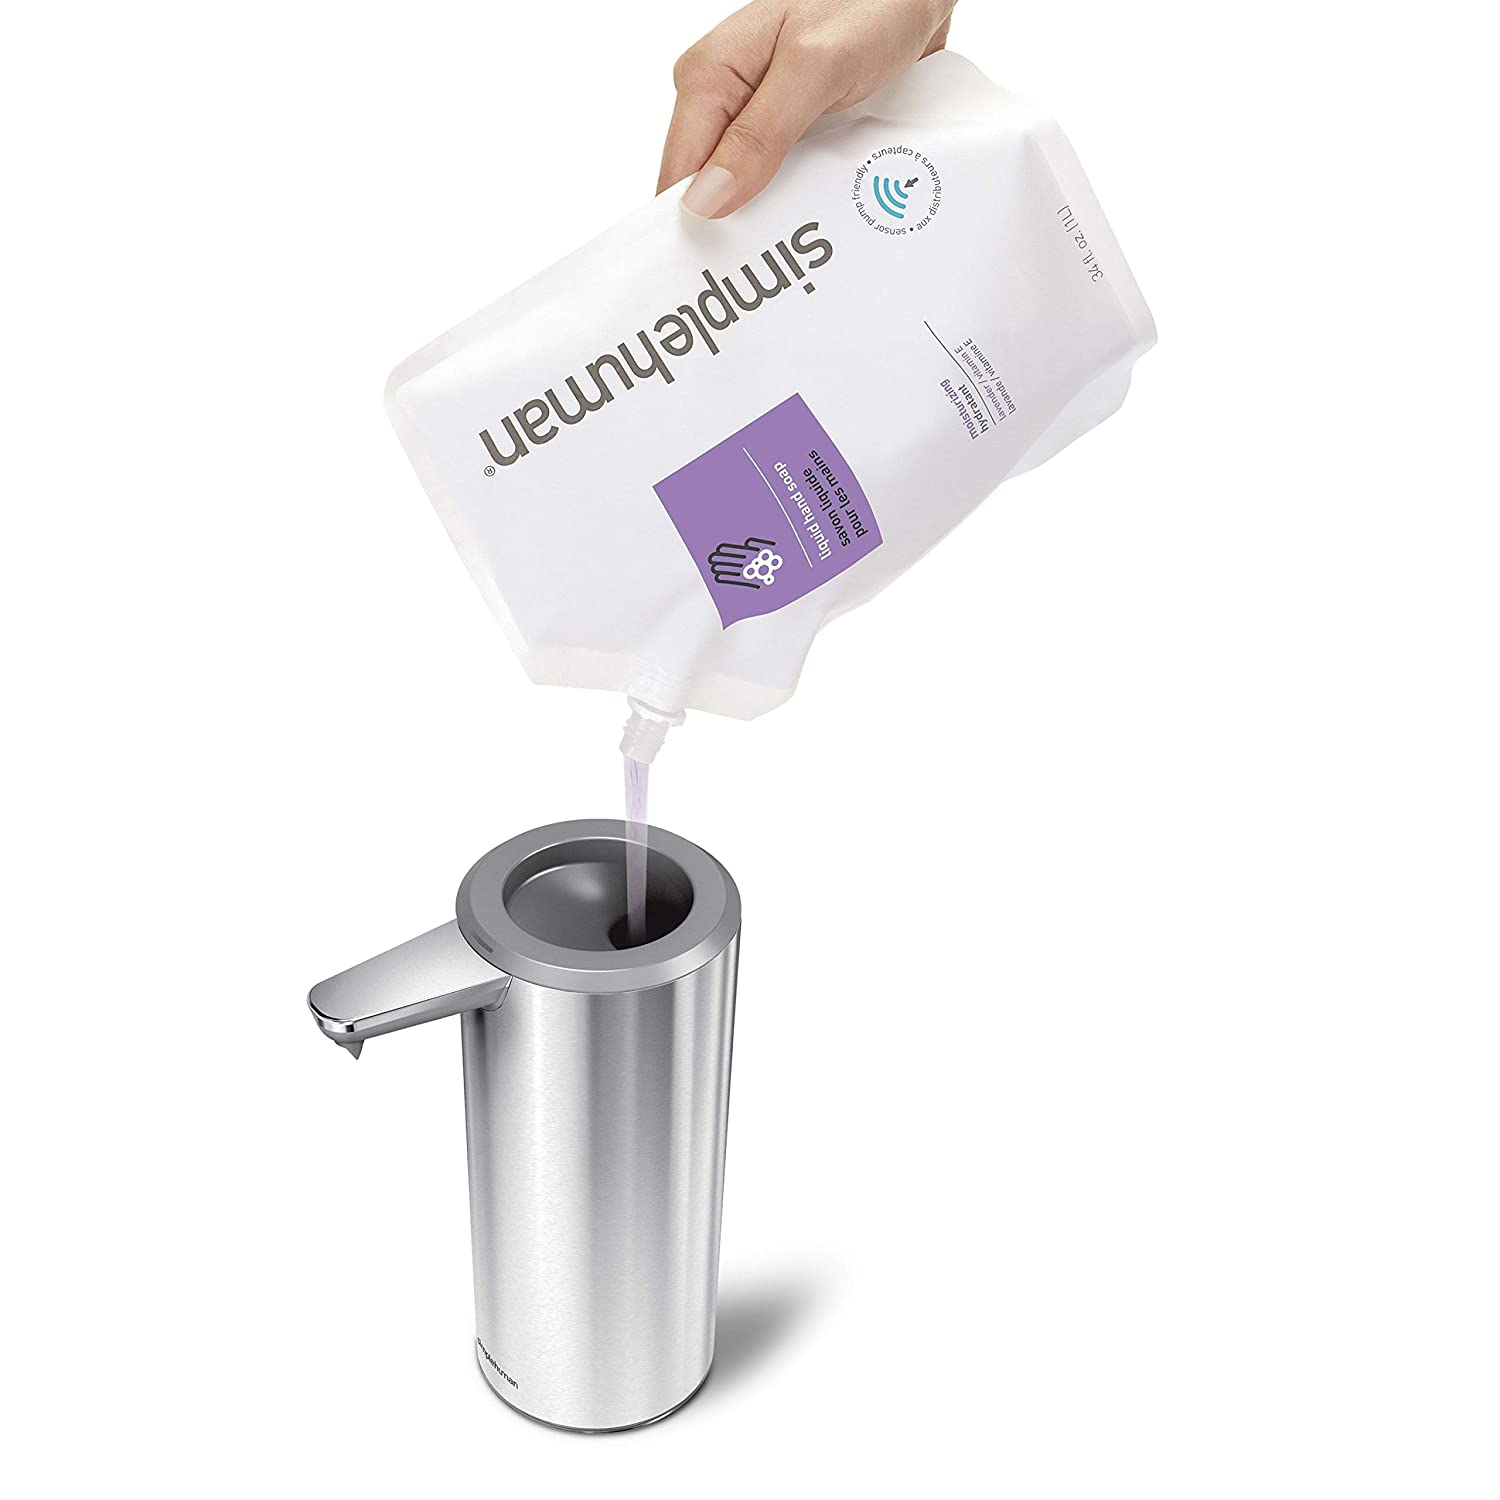 Sensor Soap Pump Rechargeable Brushed Stainless Steel simplehuman 9 oz